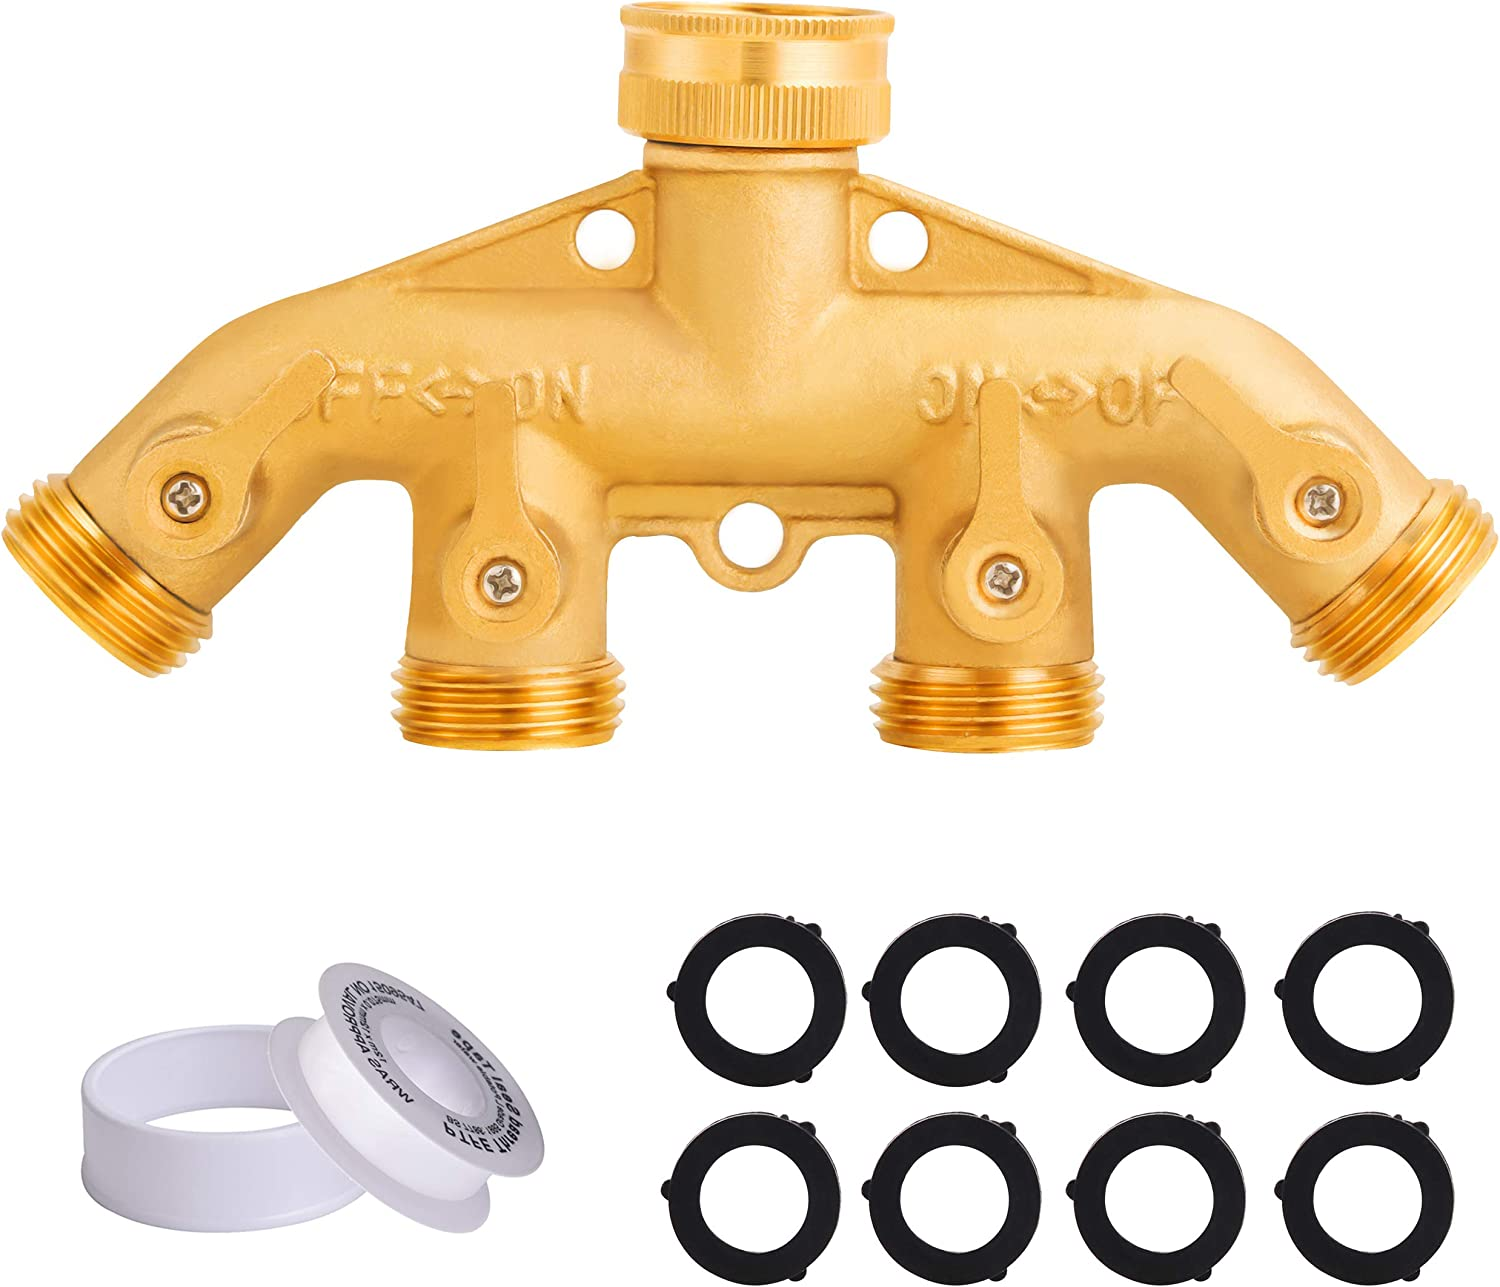 Tool Daily Garden Hose Splitter 4 Way, Spigot Adapter 4 Valves, Brass Hose Connector 3/4 Inch